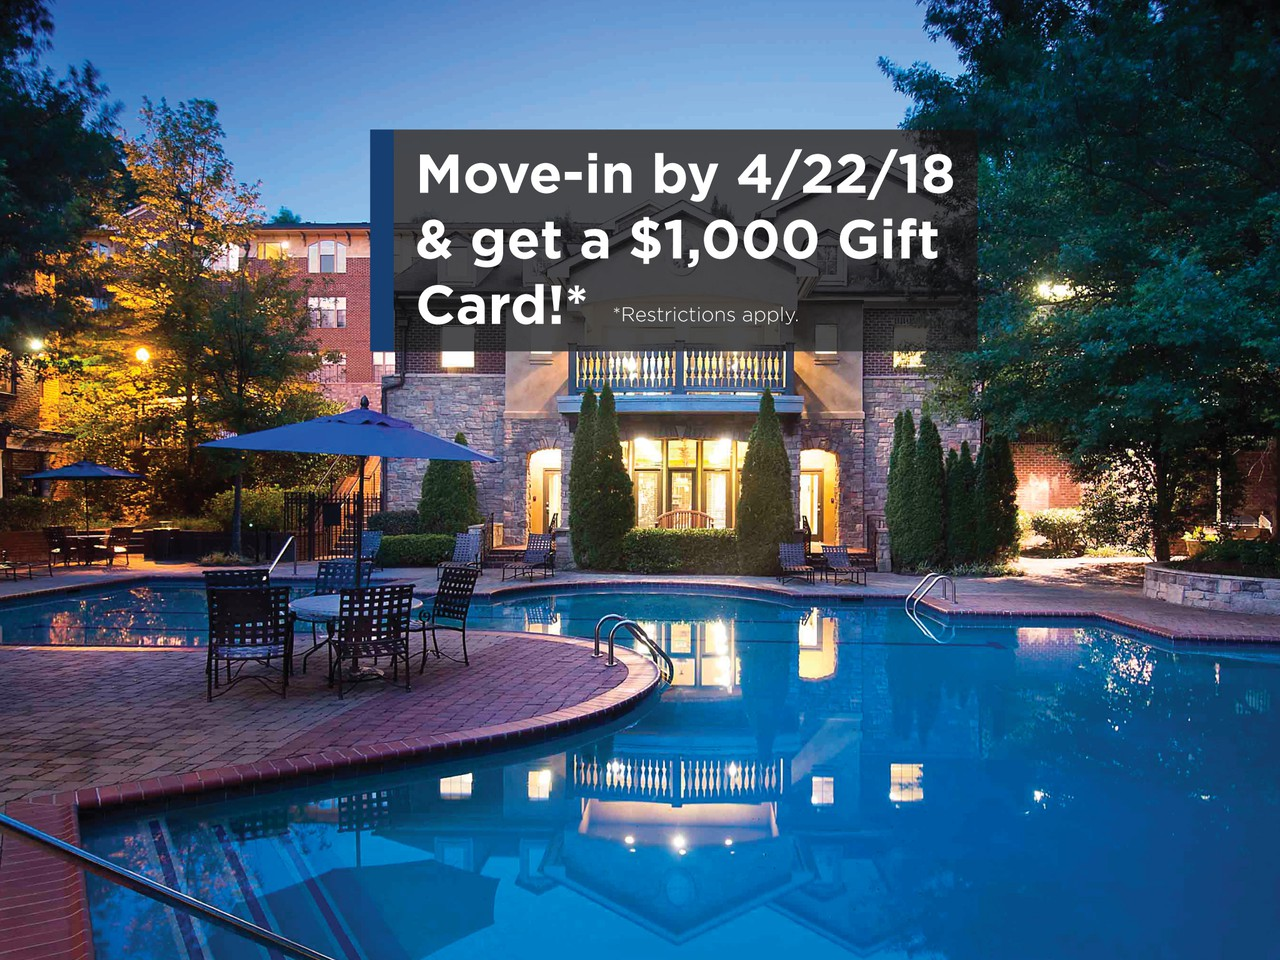 Gables Rock Springs - 550 Rock Springs Ct NE, Atlanta, GA 30306 ...